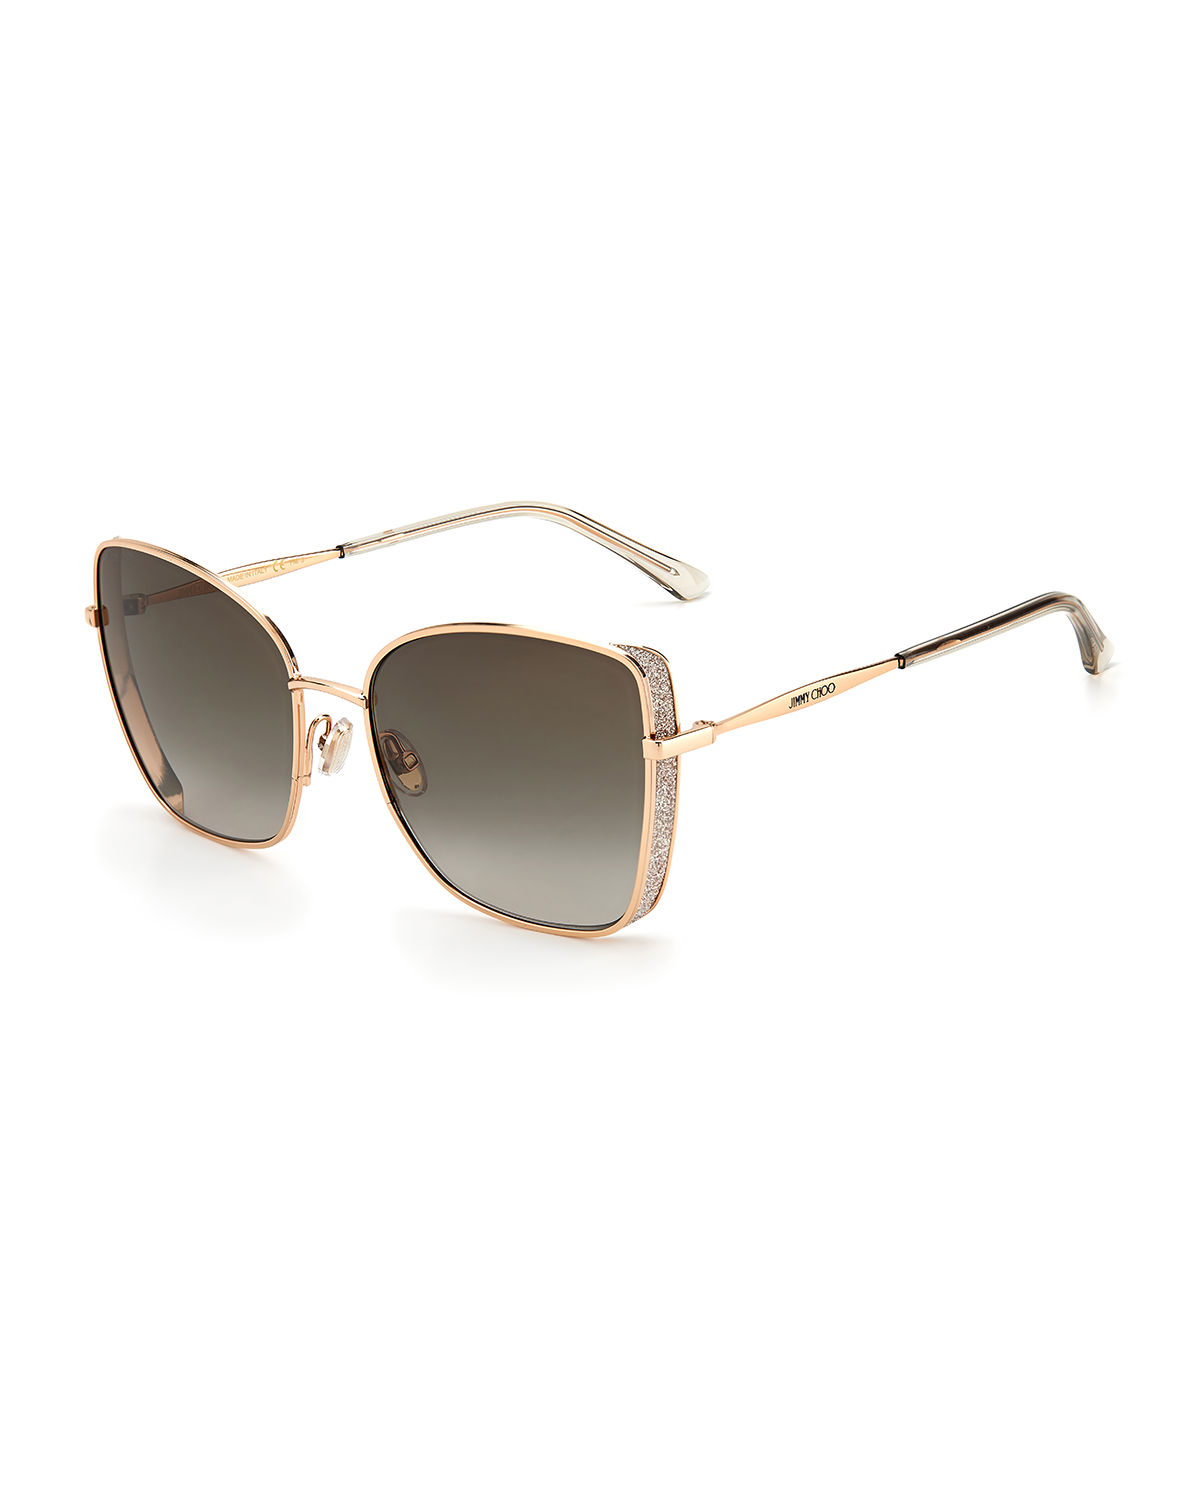 Jimmy Choo ALEXIS STAINLESS STEEL BUTTERFLY SUNGLASSES